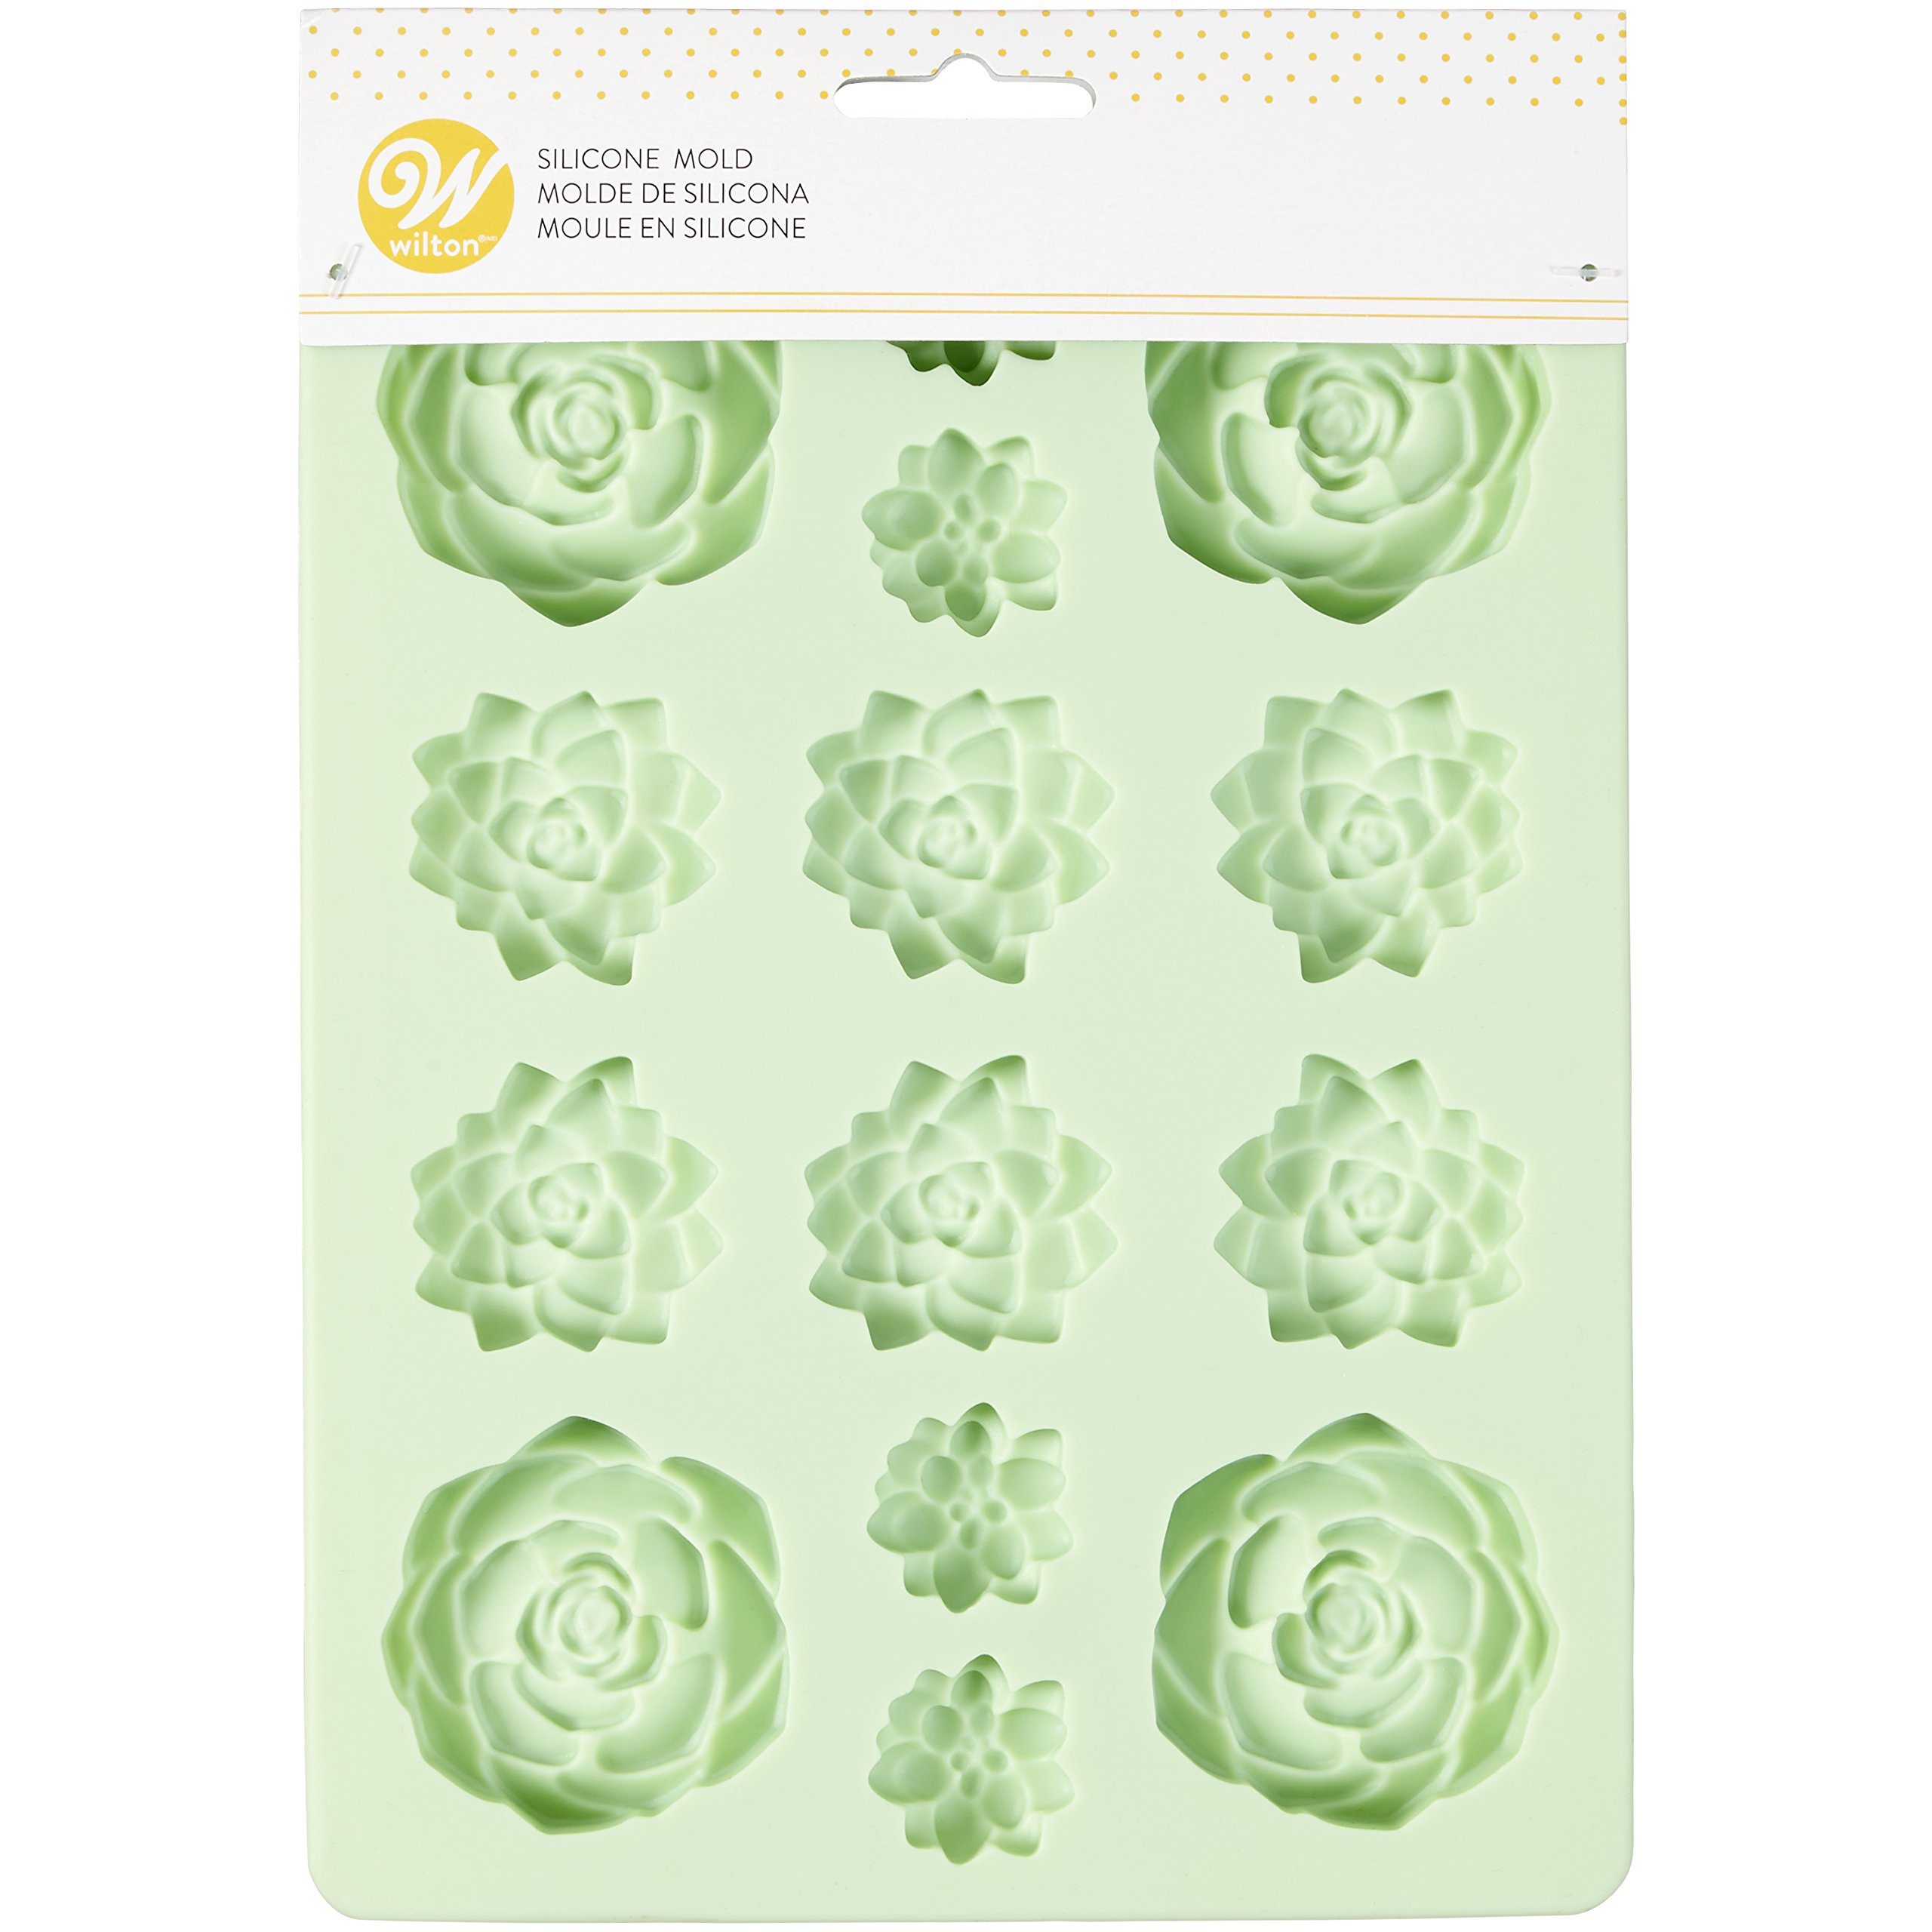 Succulents Silicone Candy Mold by Wilton